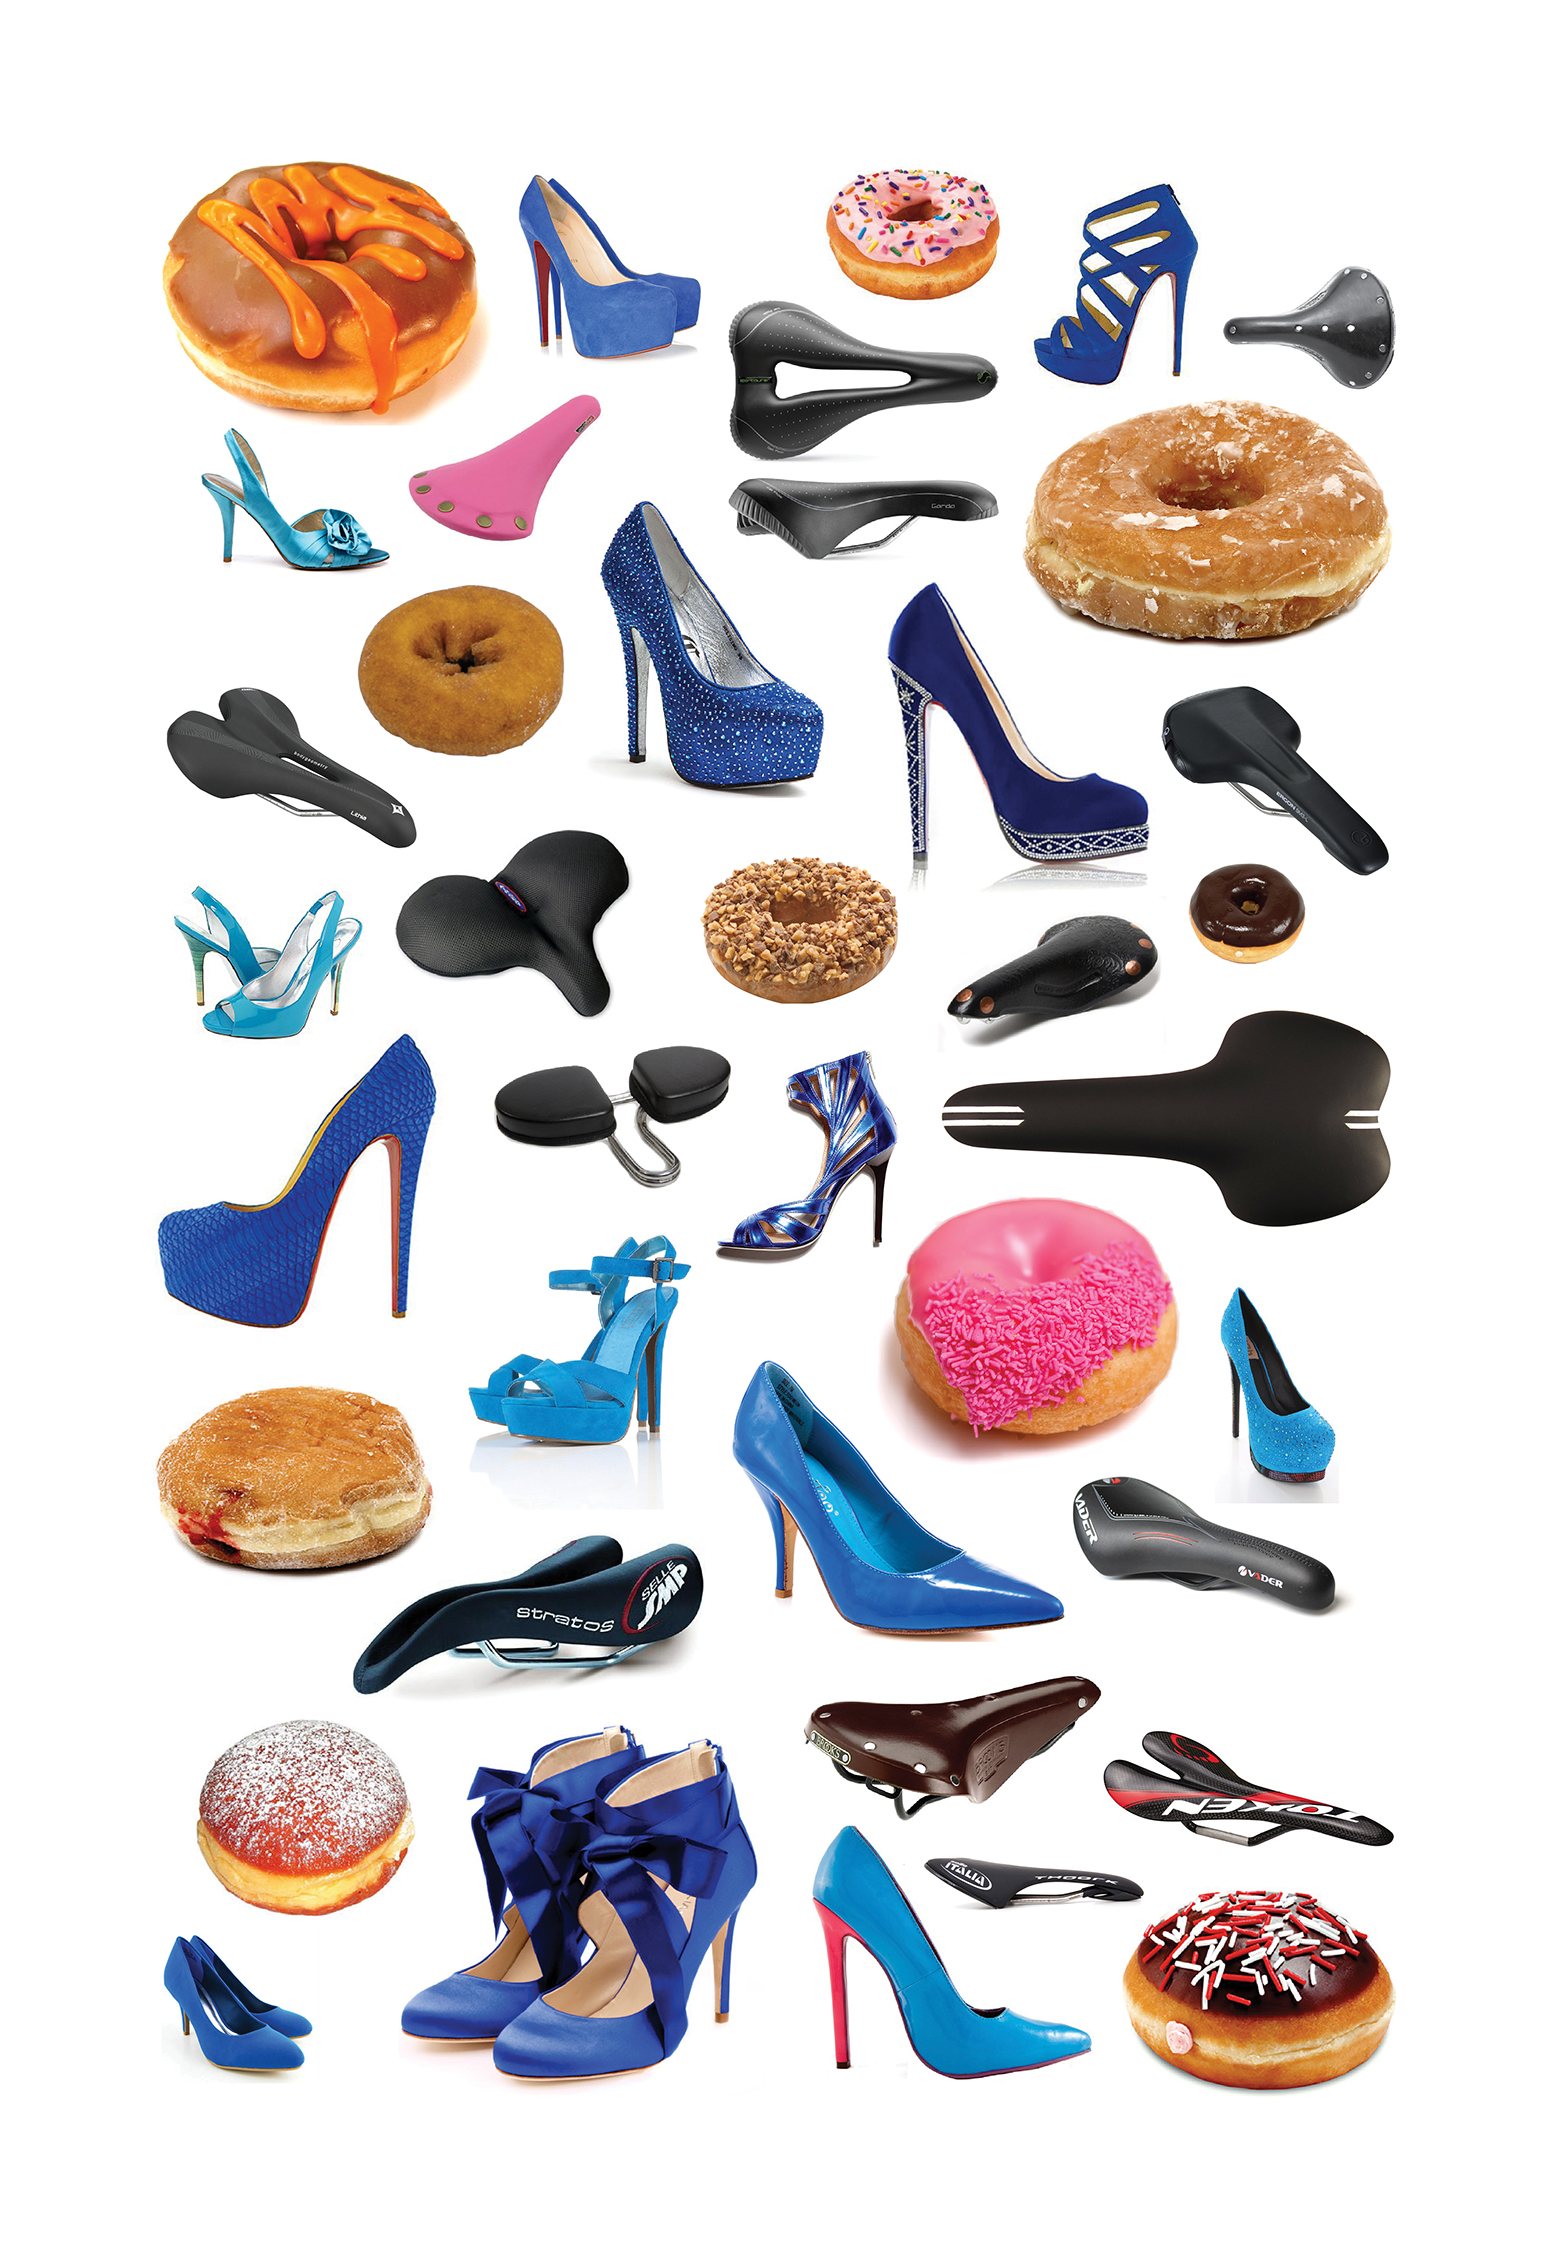 """Jeff Gibson   Set of two untitled prints (Donuts, heels, seats) , 2014   Archival inkjet print Ed. 1 of 3   Courtesy of the artist   39"""" x 27"""" each   Retail Value: $3,000   Opening Bid: $2,000"""